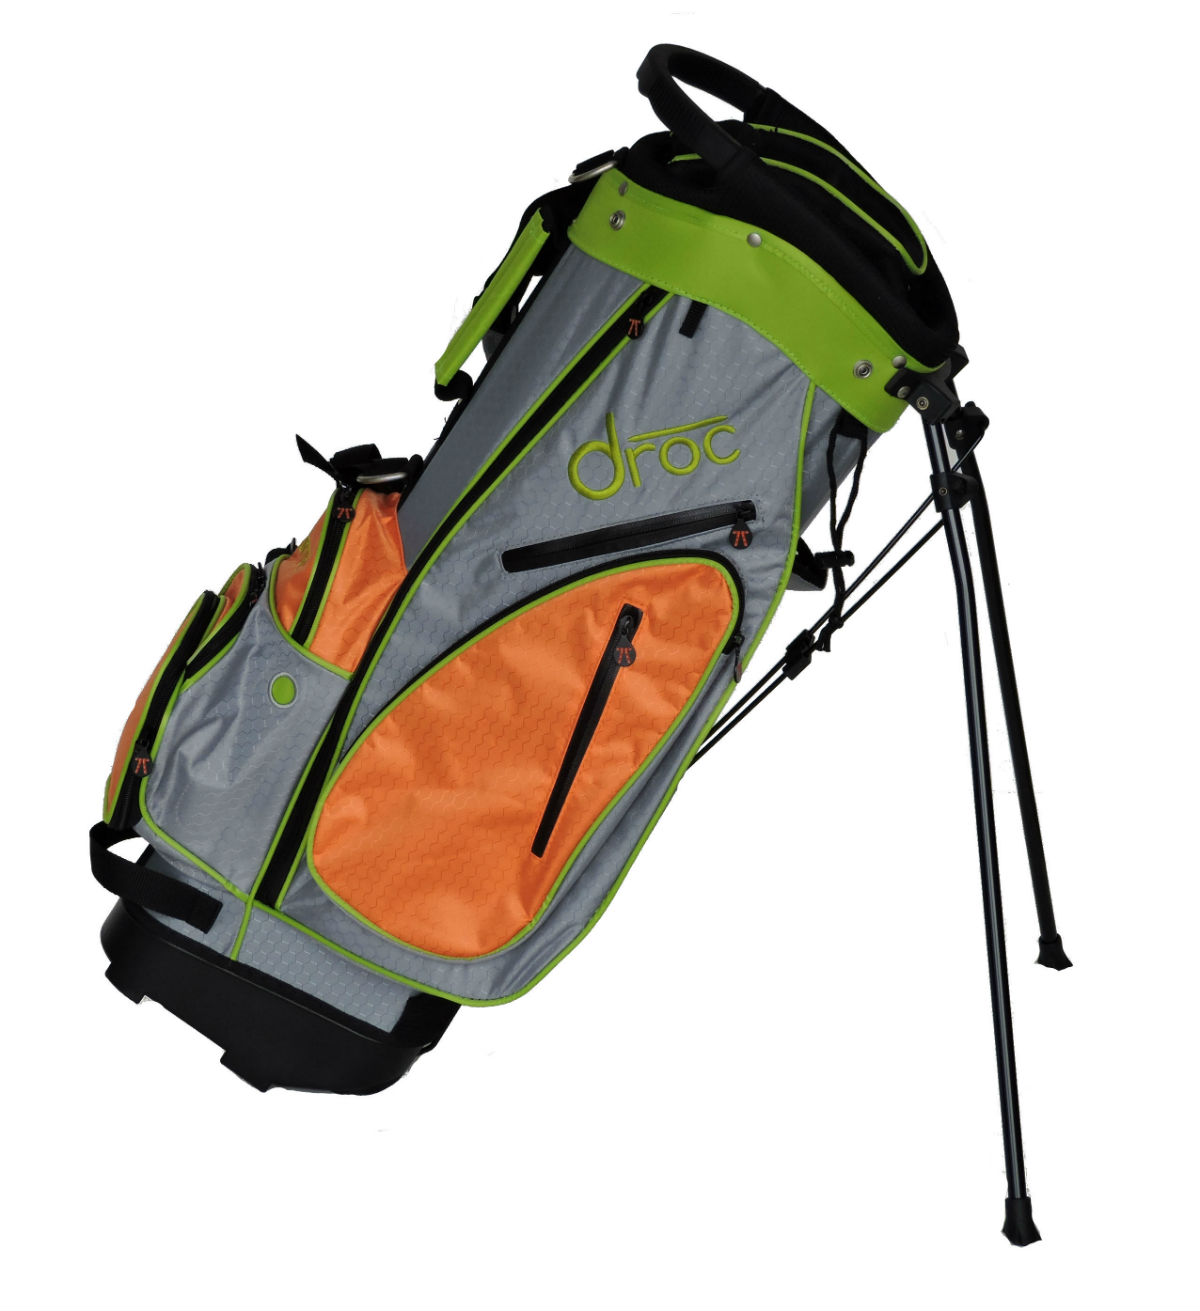 Droc - Dimond Golf Bag  30